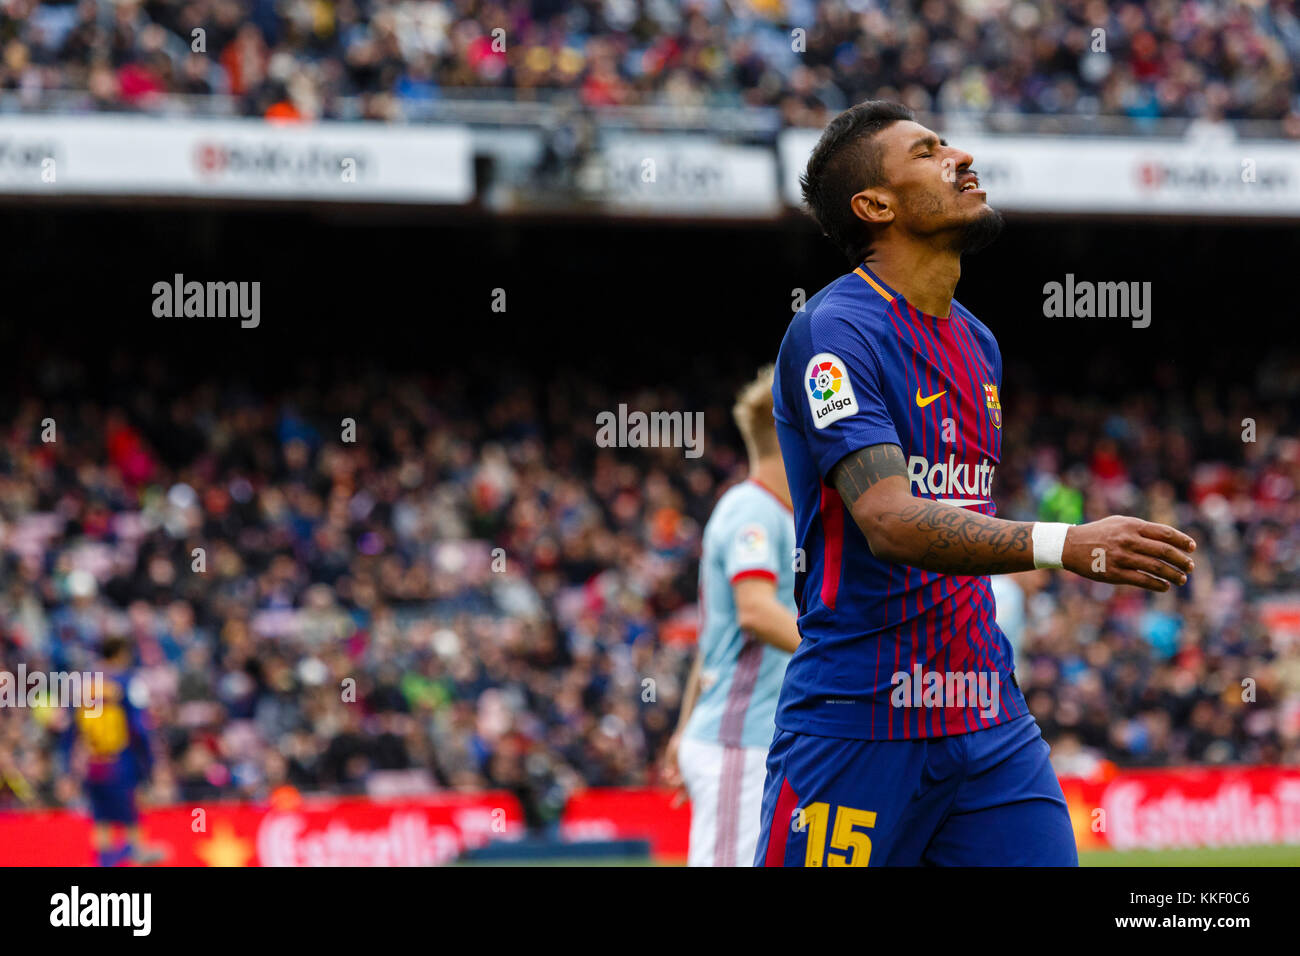 Barcelona, Spain. 02nd Dec, 2017. (15) Paulinho during the match of the La Liga between FC Barcelona and RC Celta - Stock Image